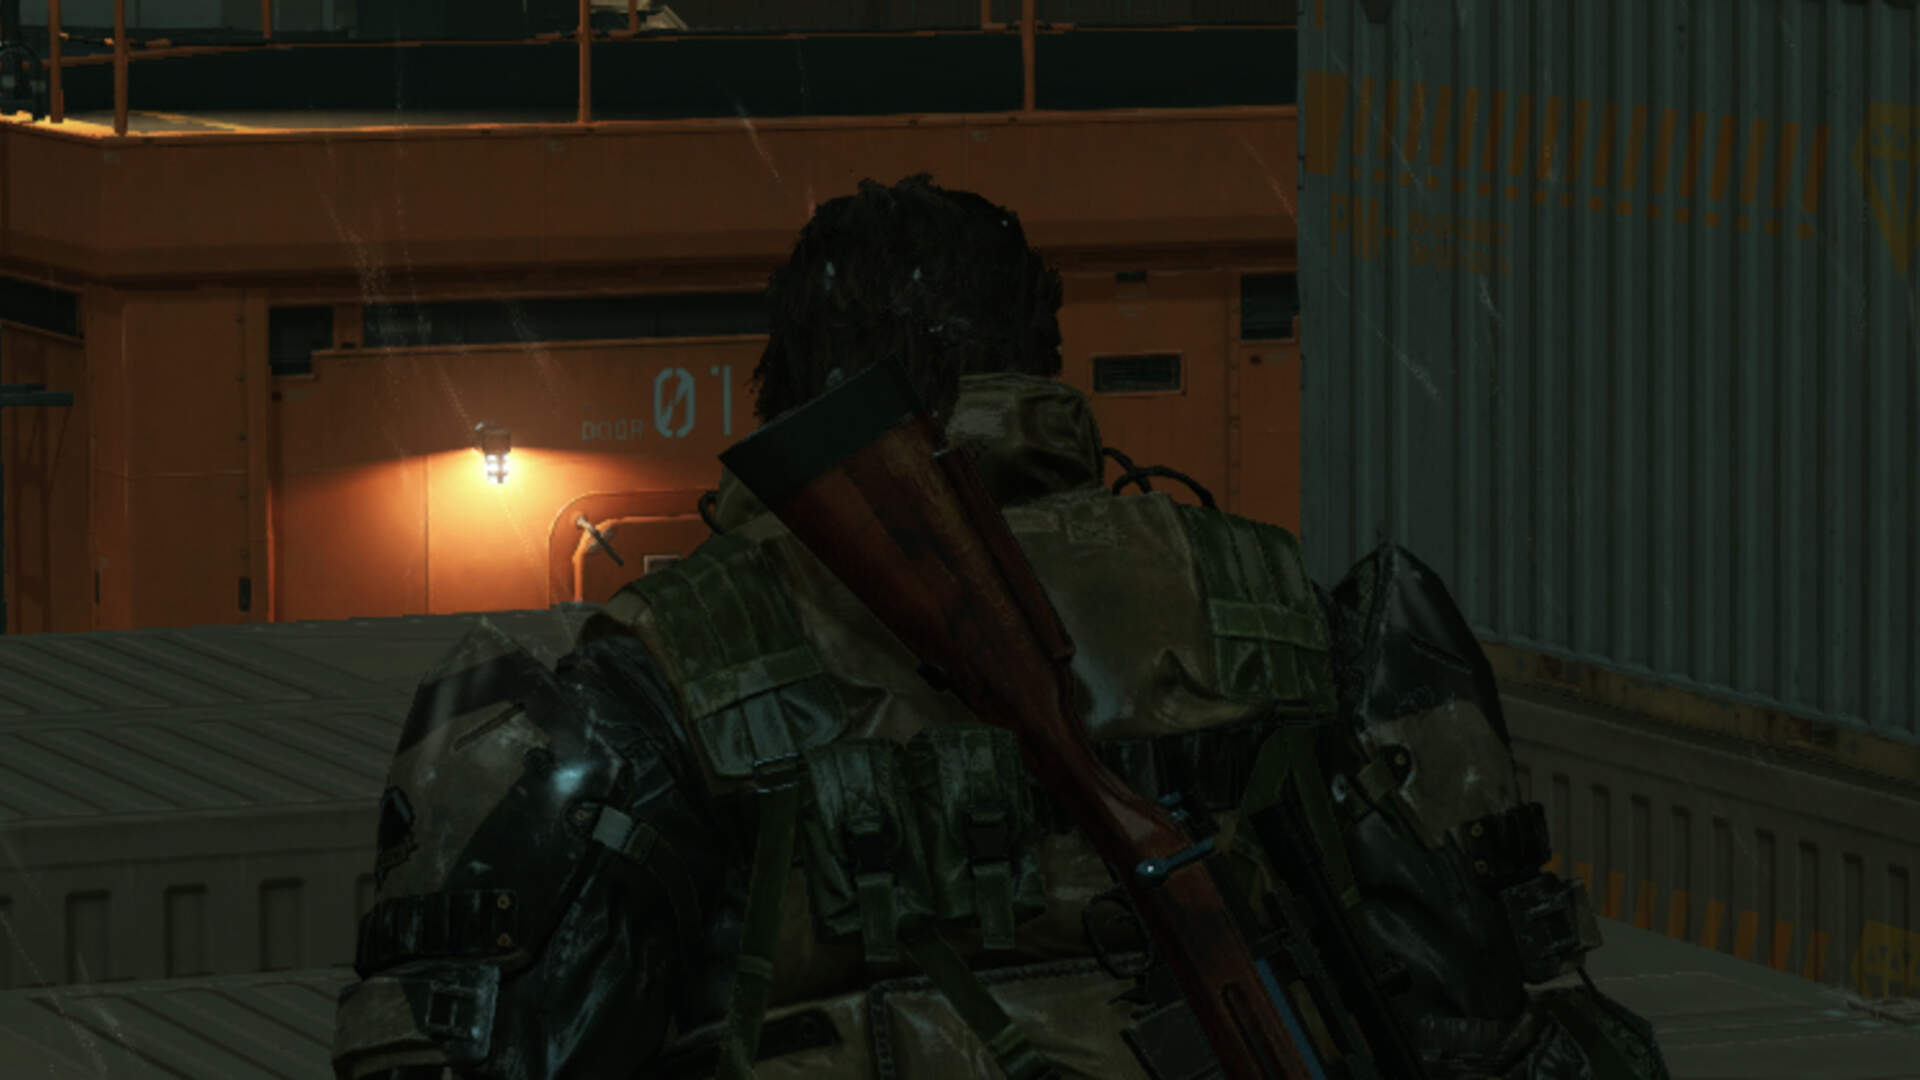 Metal Gear Solid 5 - How to Make GMP, How to Farm GMP Guide